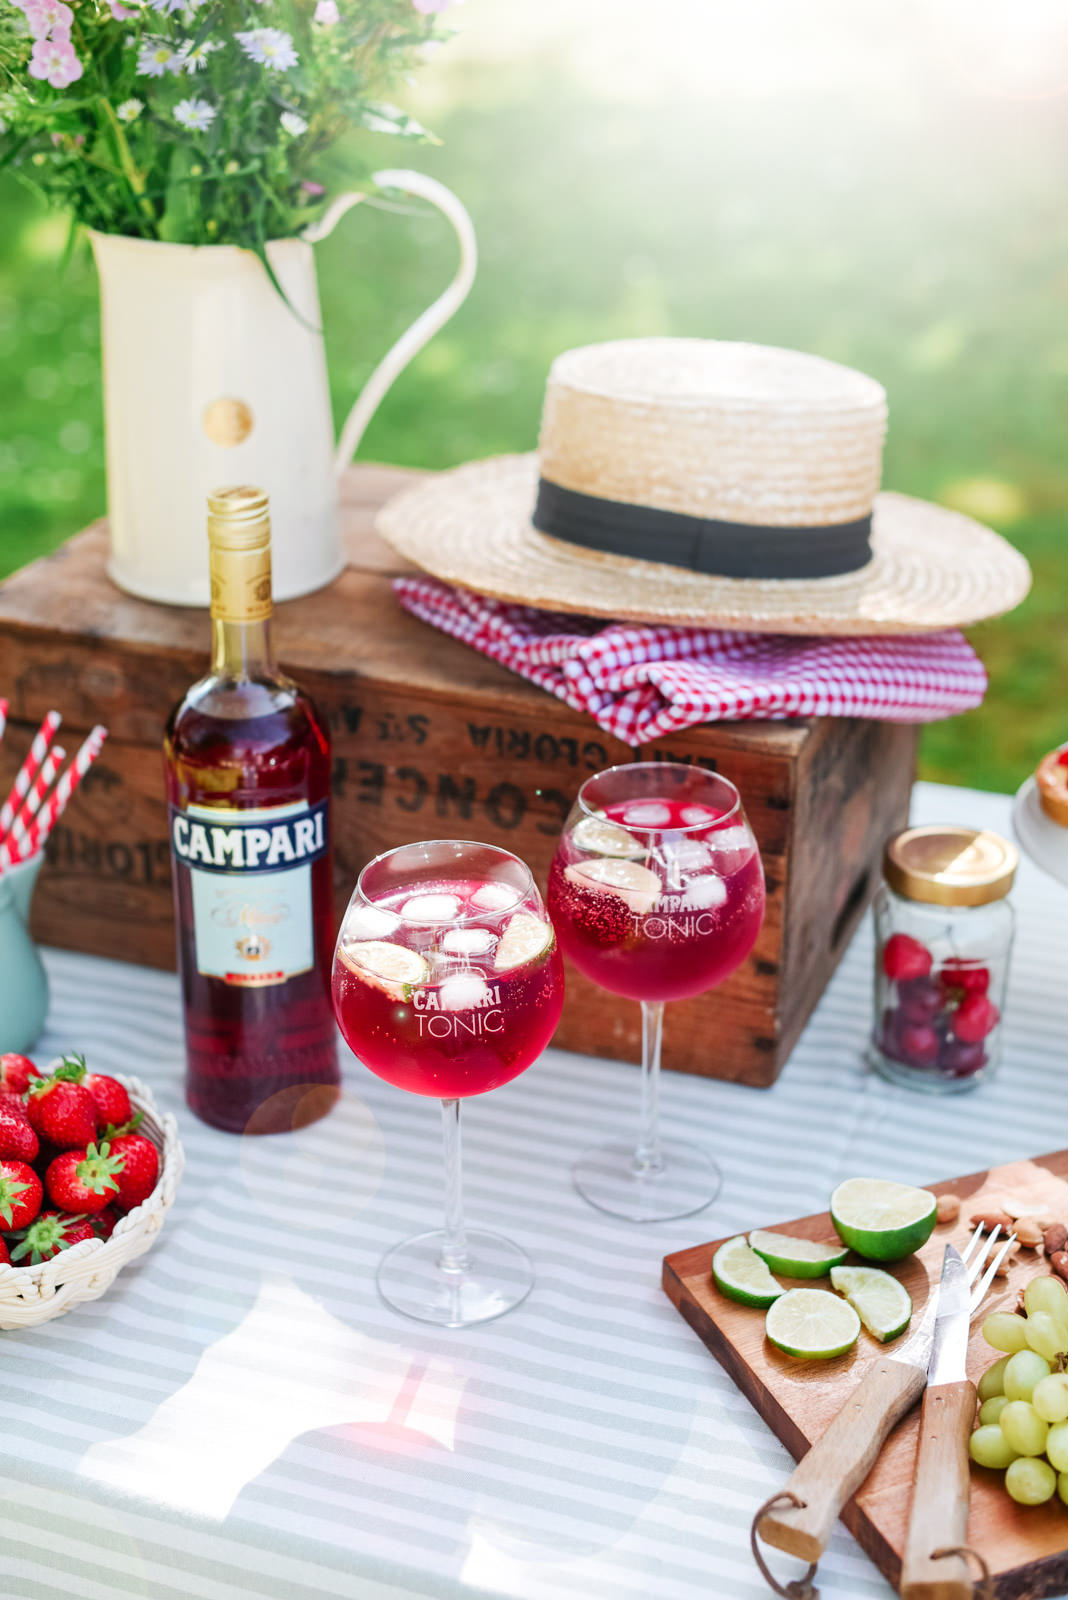 Blog-Mode-And-the-City-Lifestyle-Dejeuner-Champetre-Campari-4